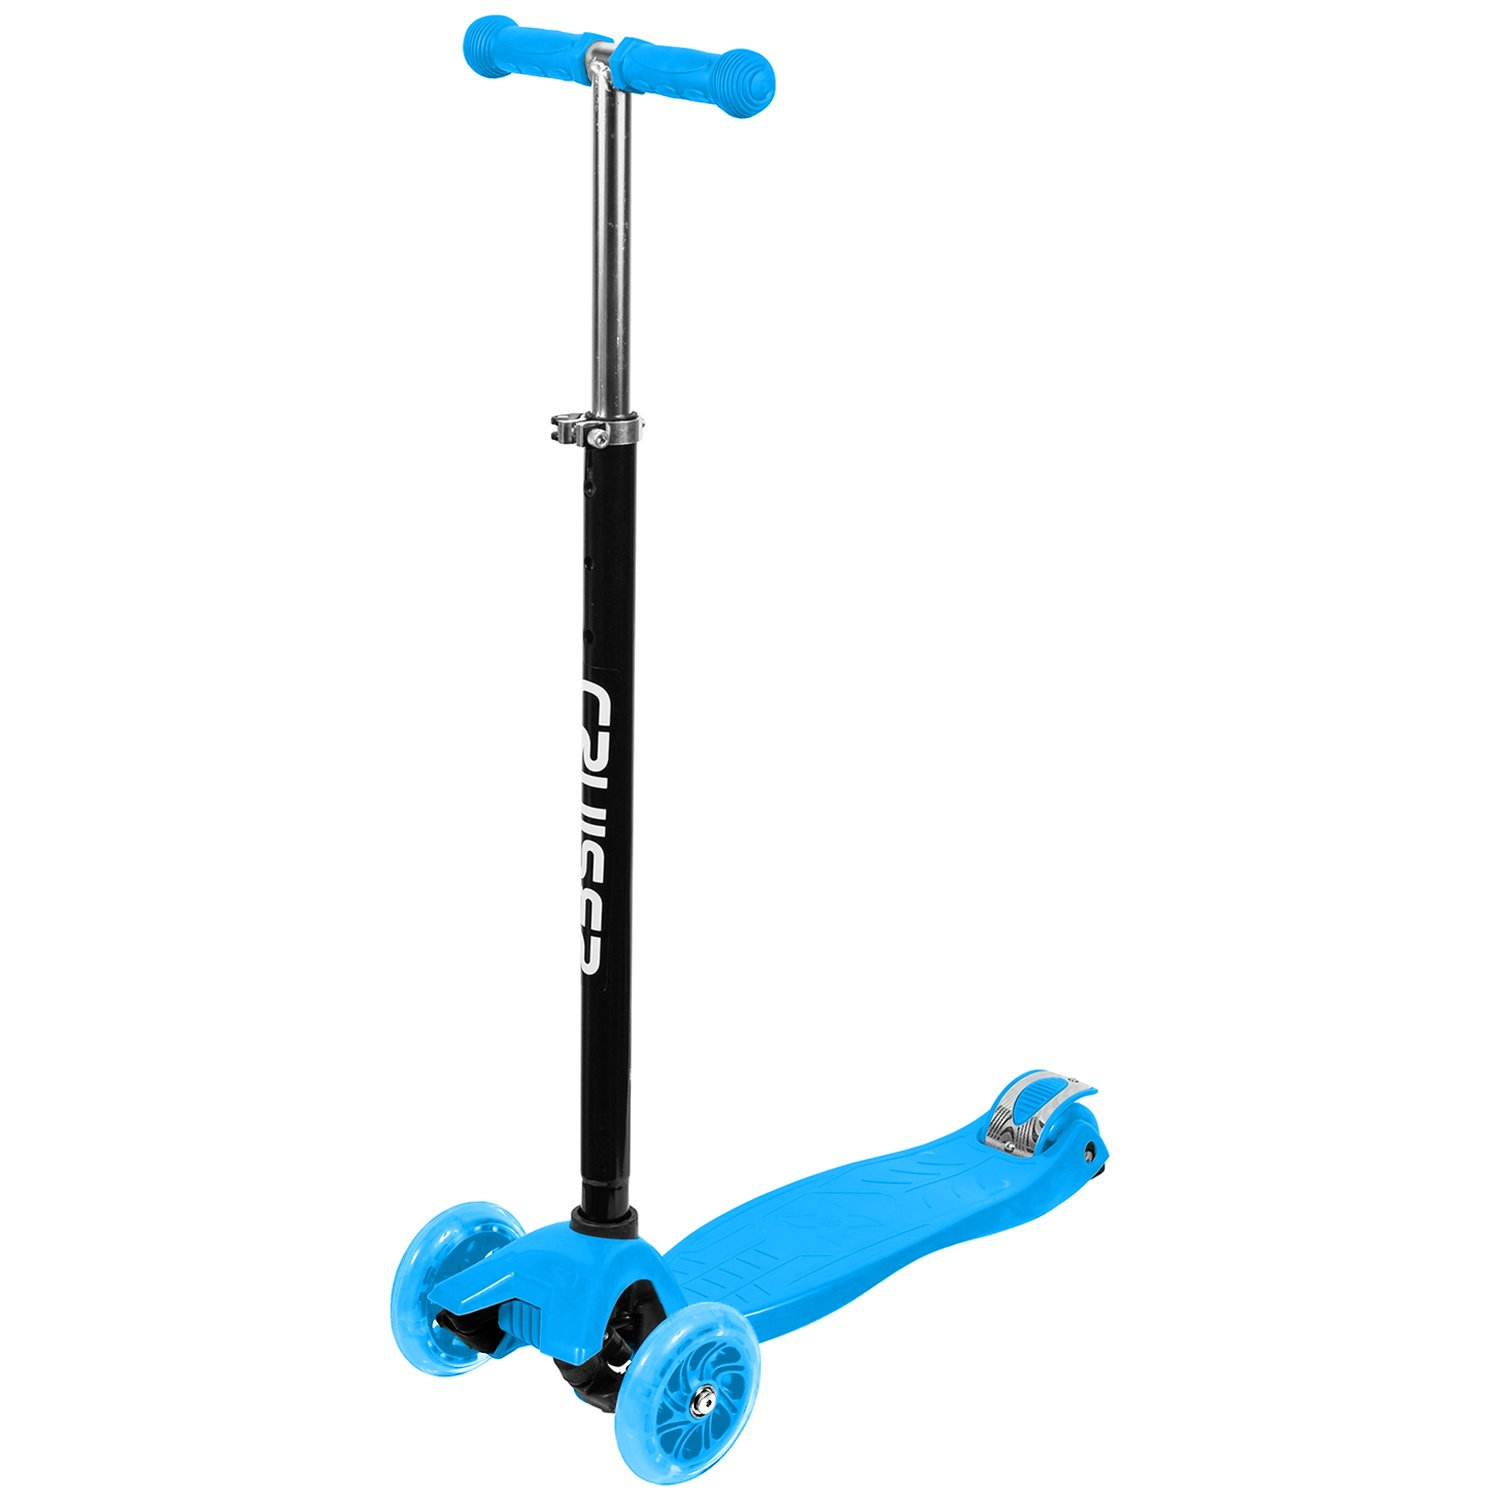 The Sidewalk Cruiser - 3 Wheel Kick Scooter (Scooters For Kids)